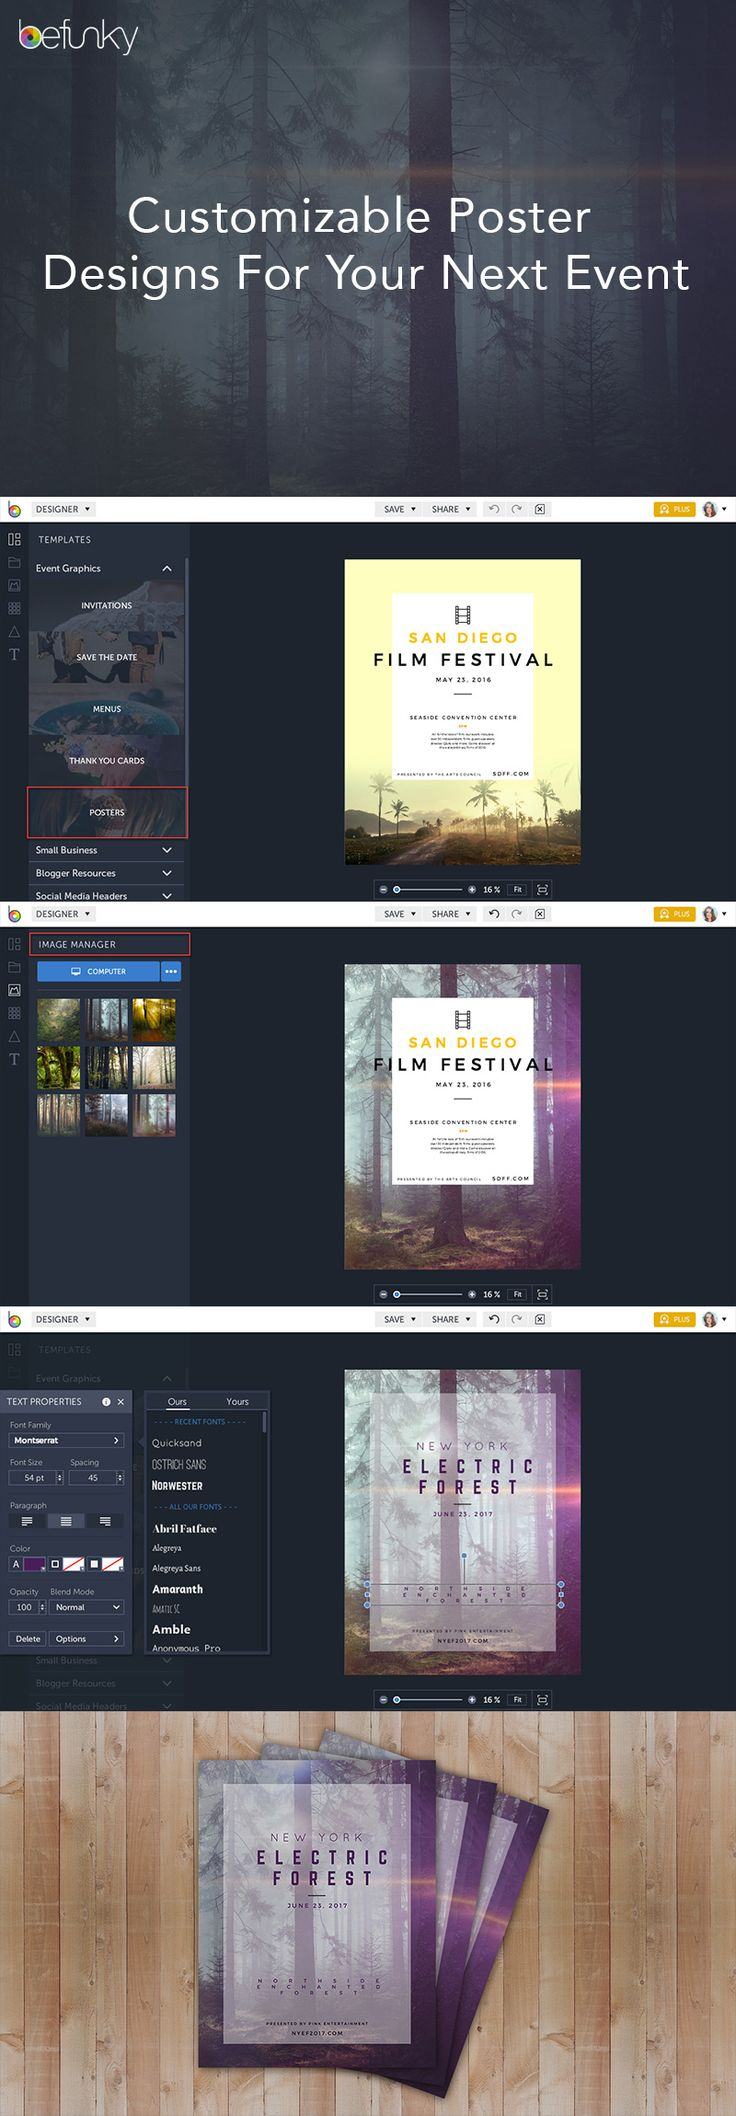 Poster design resources - Find This Pin And More On Free Design Resources By Atadsarcastic